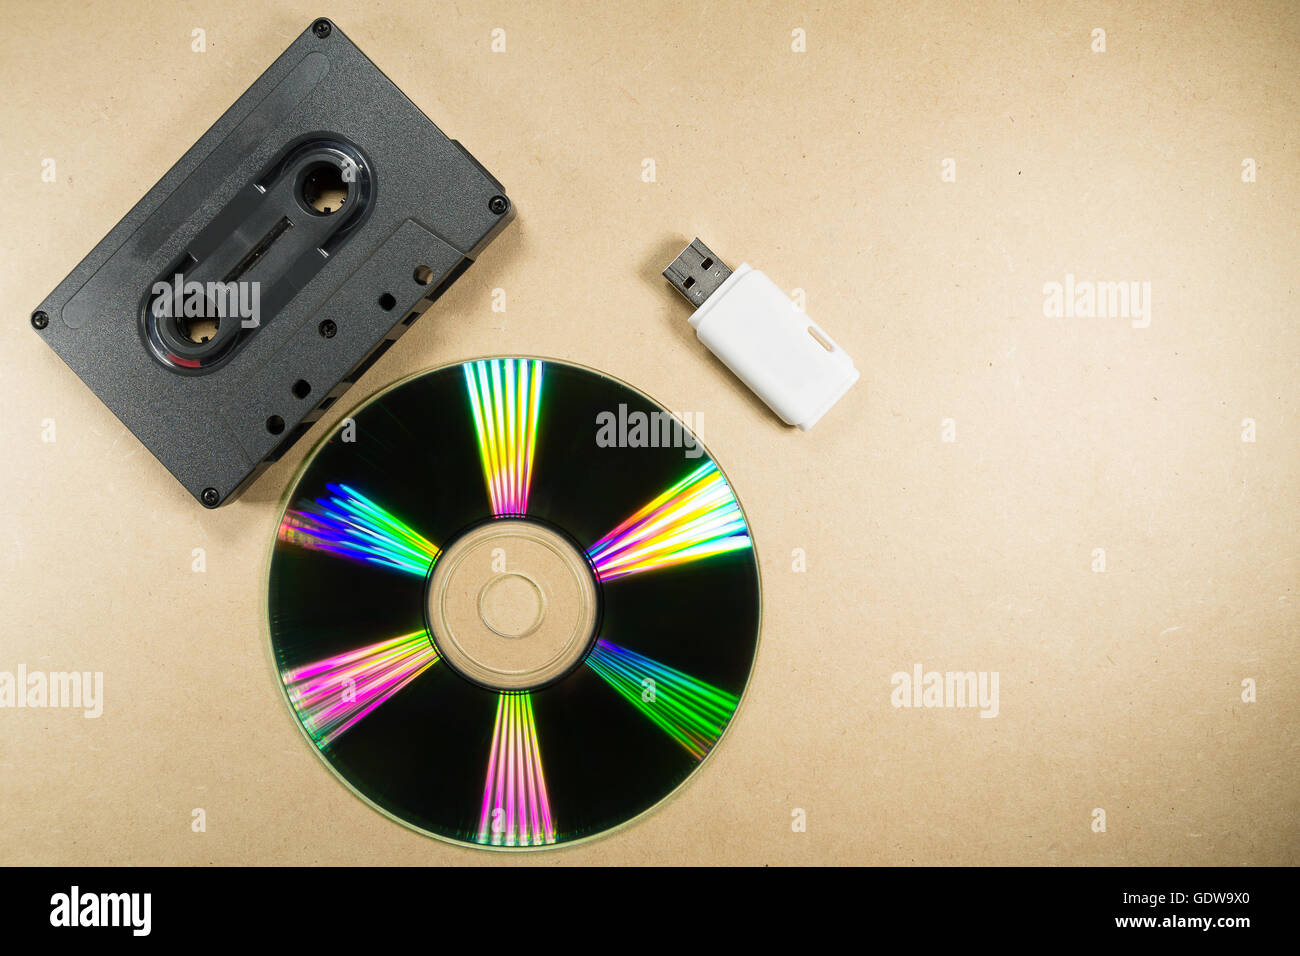 Concept of music evolution. Musicassette, cd and usb support. Vintage and modern. Supports for music - Stock Image